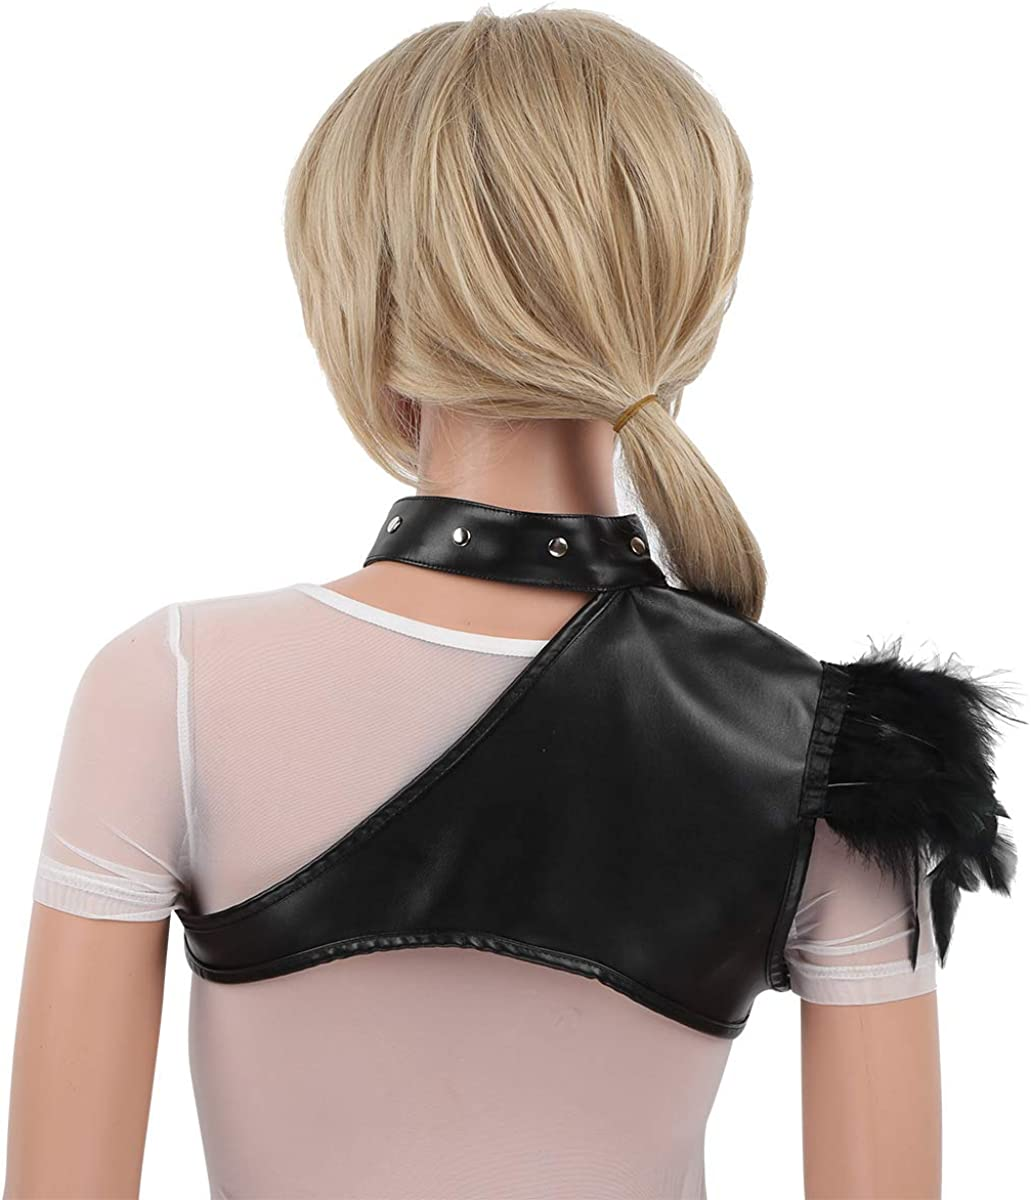 CHICTRY Womens PU Leather Halter One Shoulder Bustier Body Chest Buckle Straps Punk Clubwear